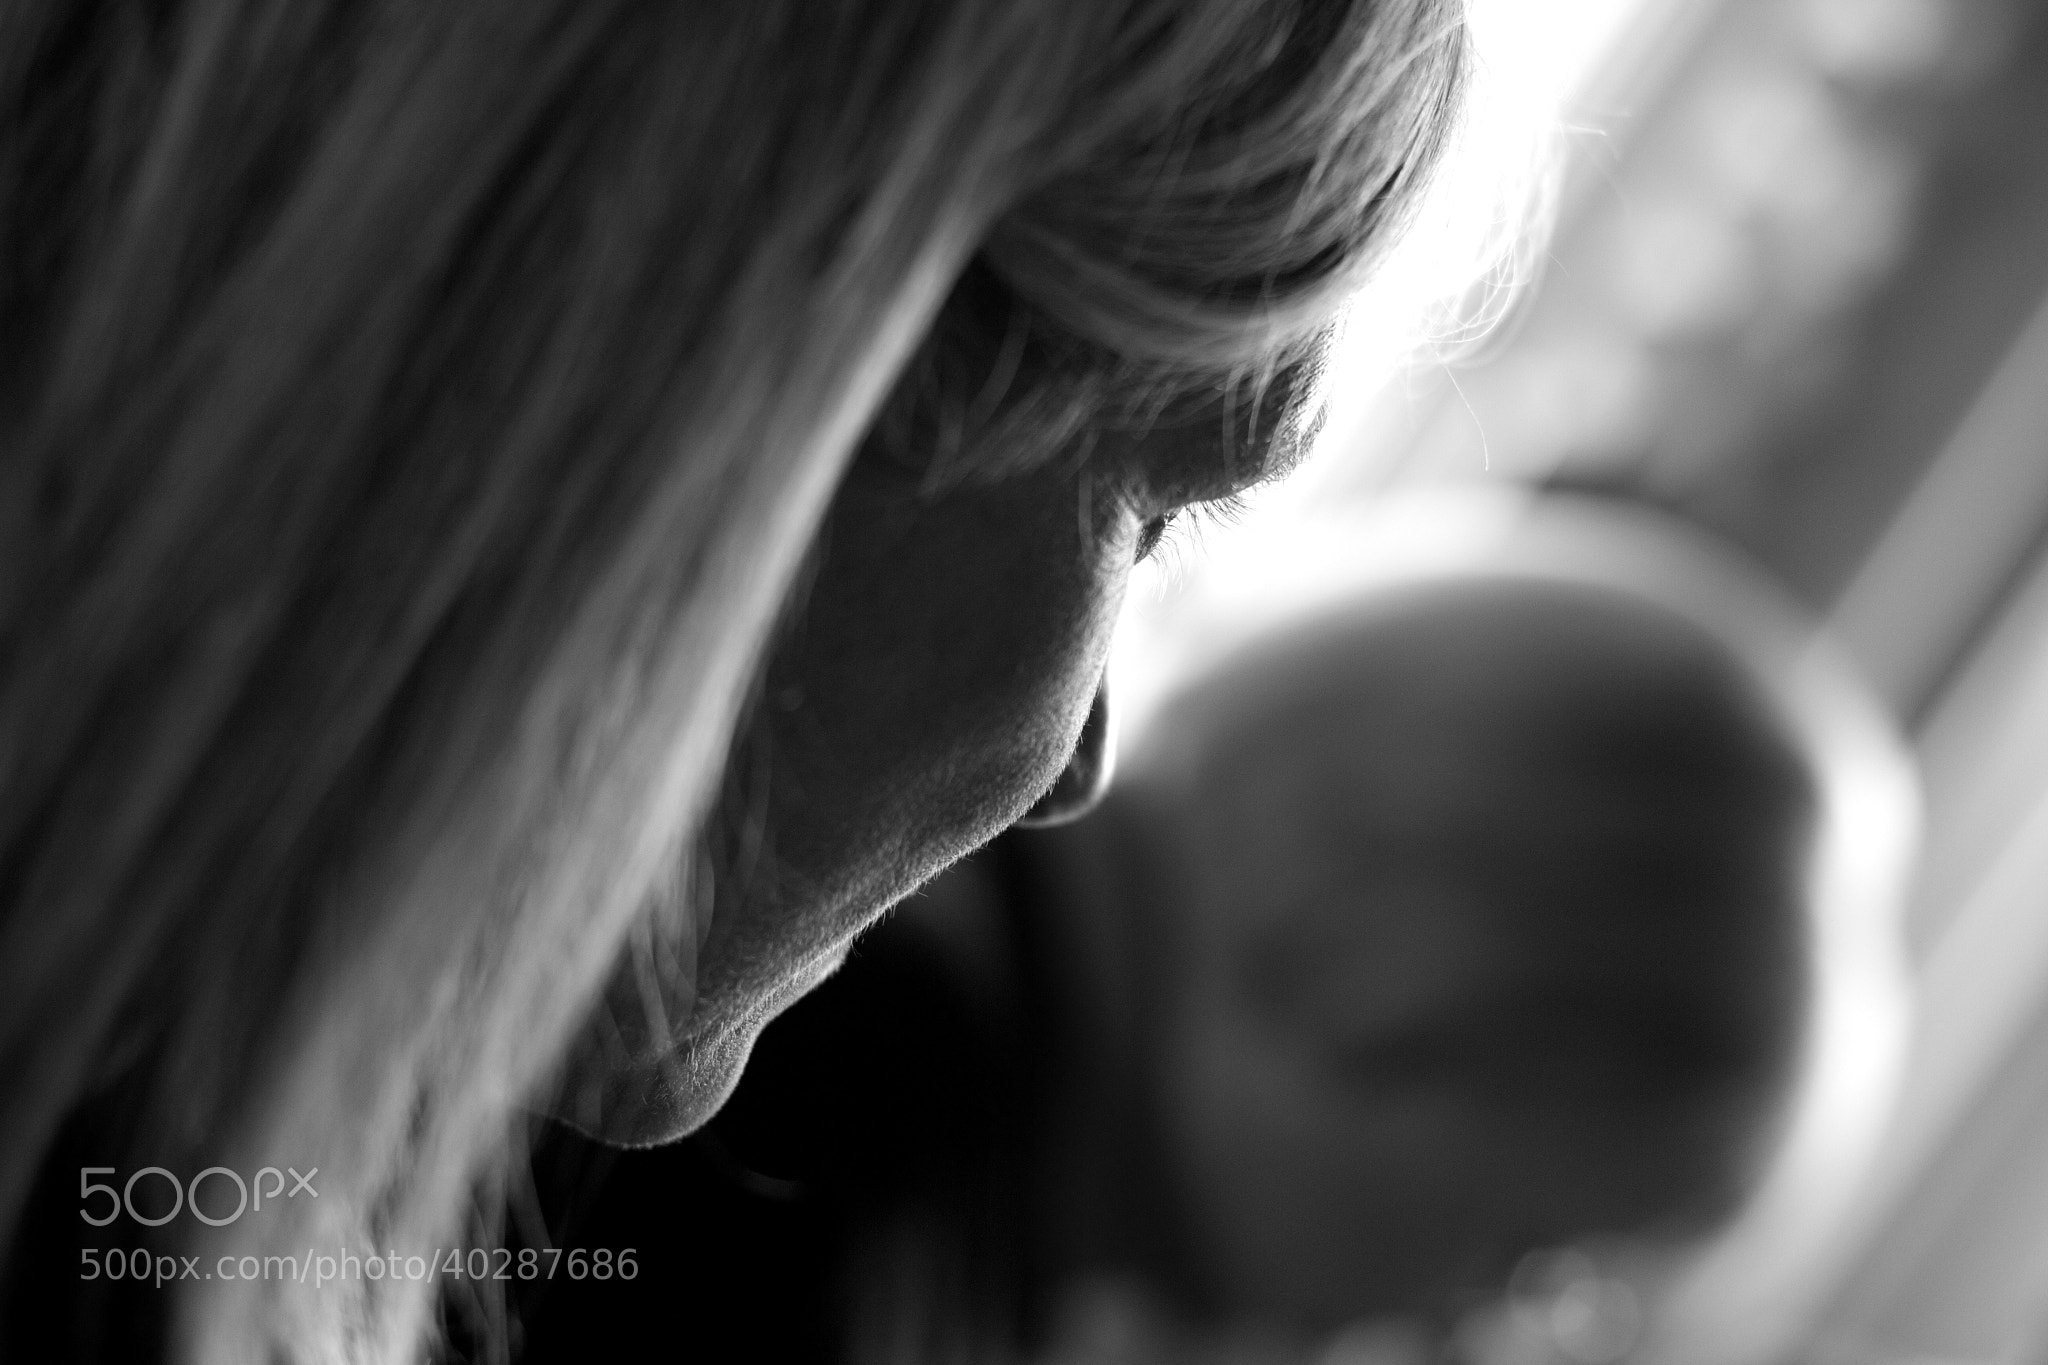 Photograph Mom 2 by theonlyheinrich on 500px